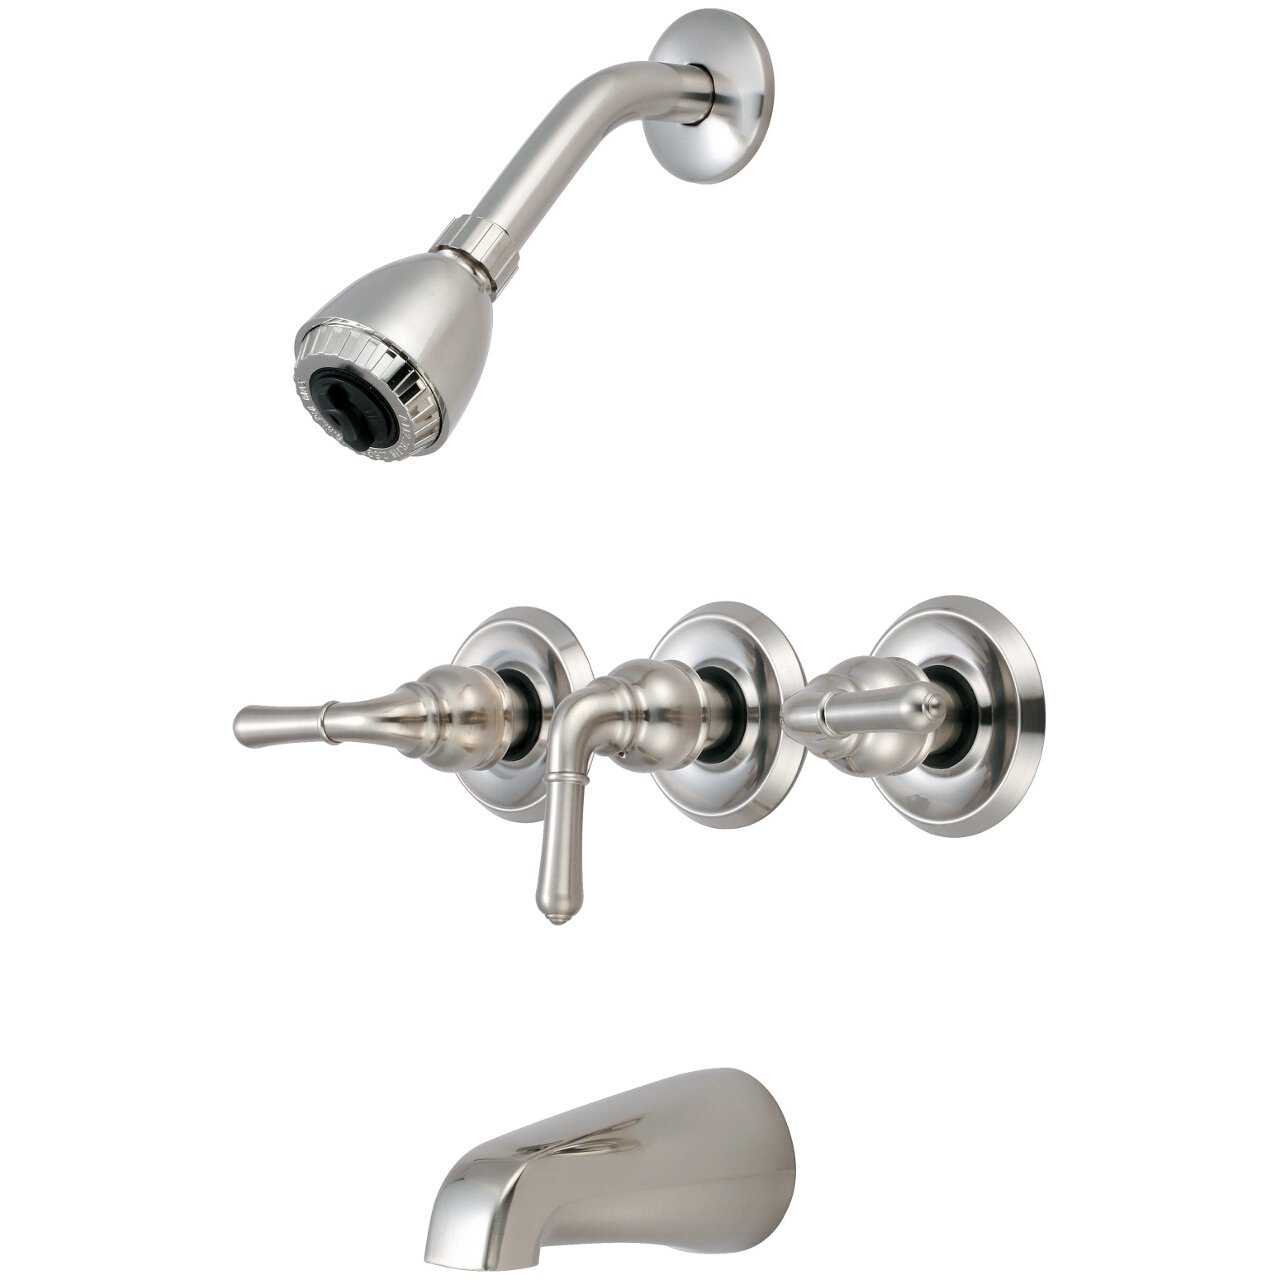 3 handle tub and shower faucet bronze. Olympia Faucets P 3230 BN Three Handle Tub Shower Set  PVD Brushed Nickel Finish And Amazon com